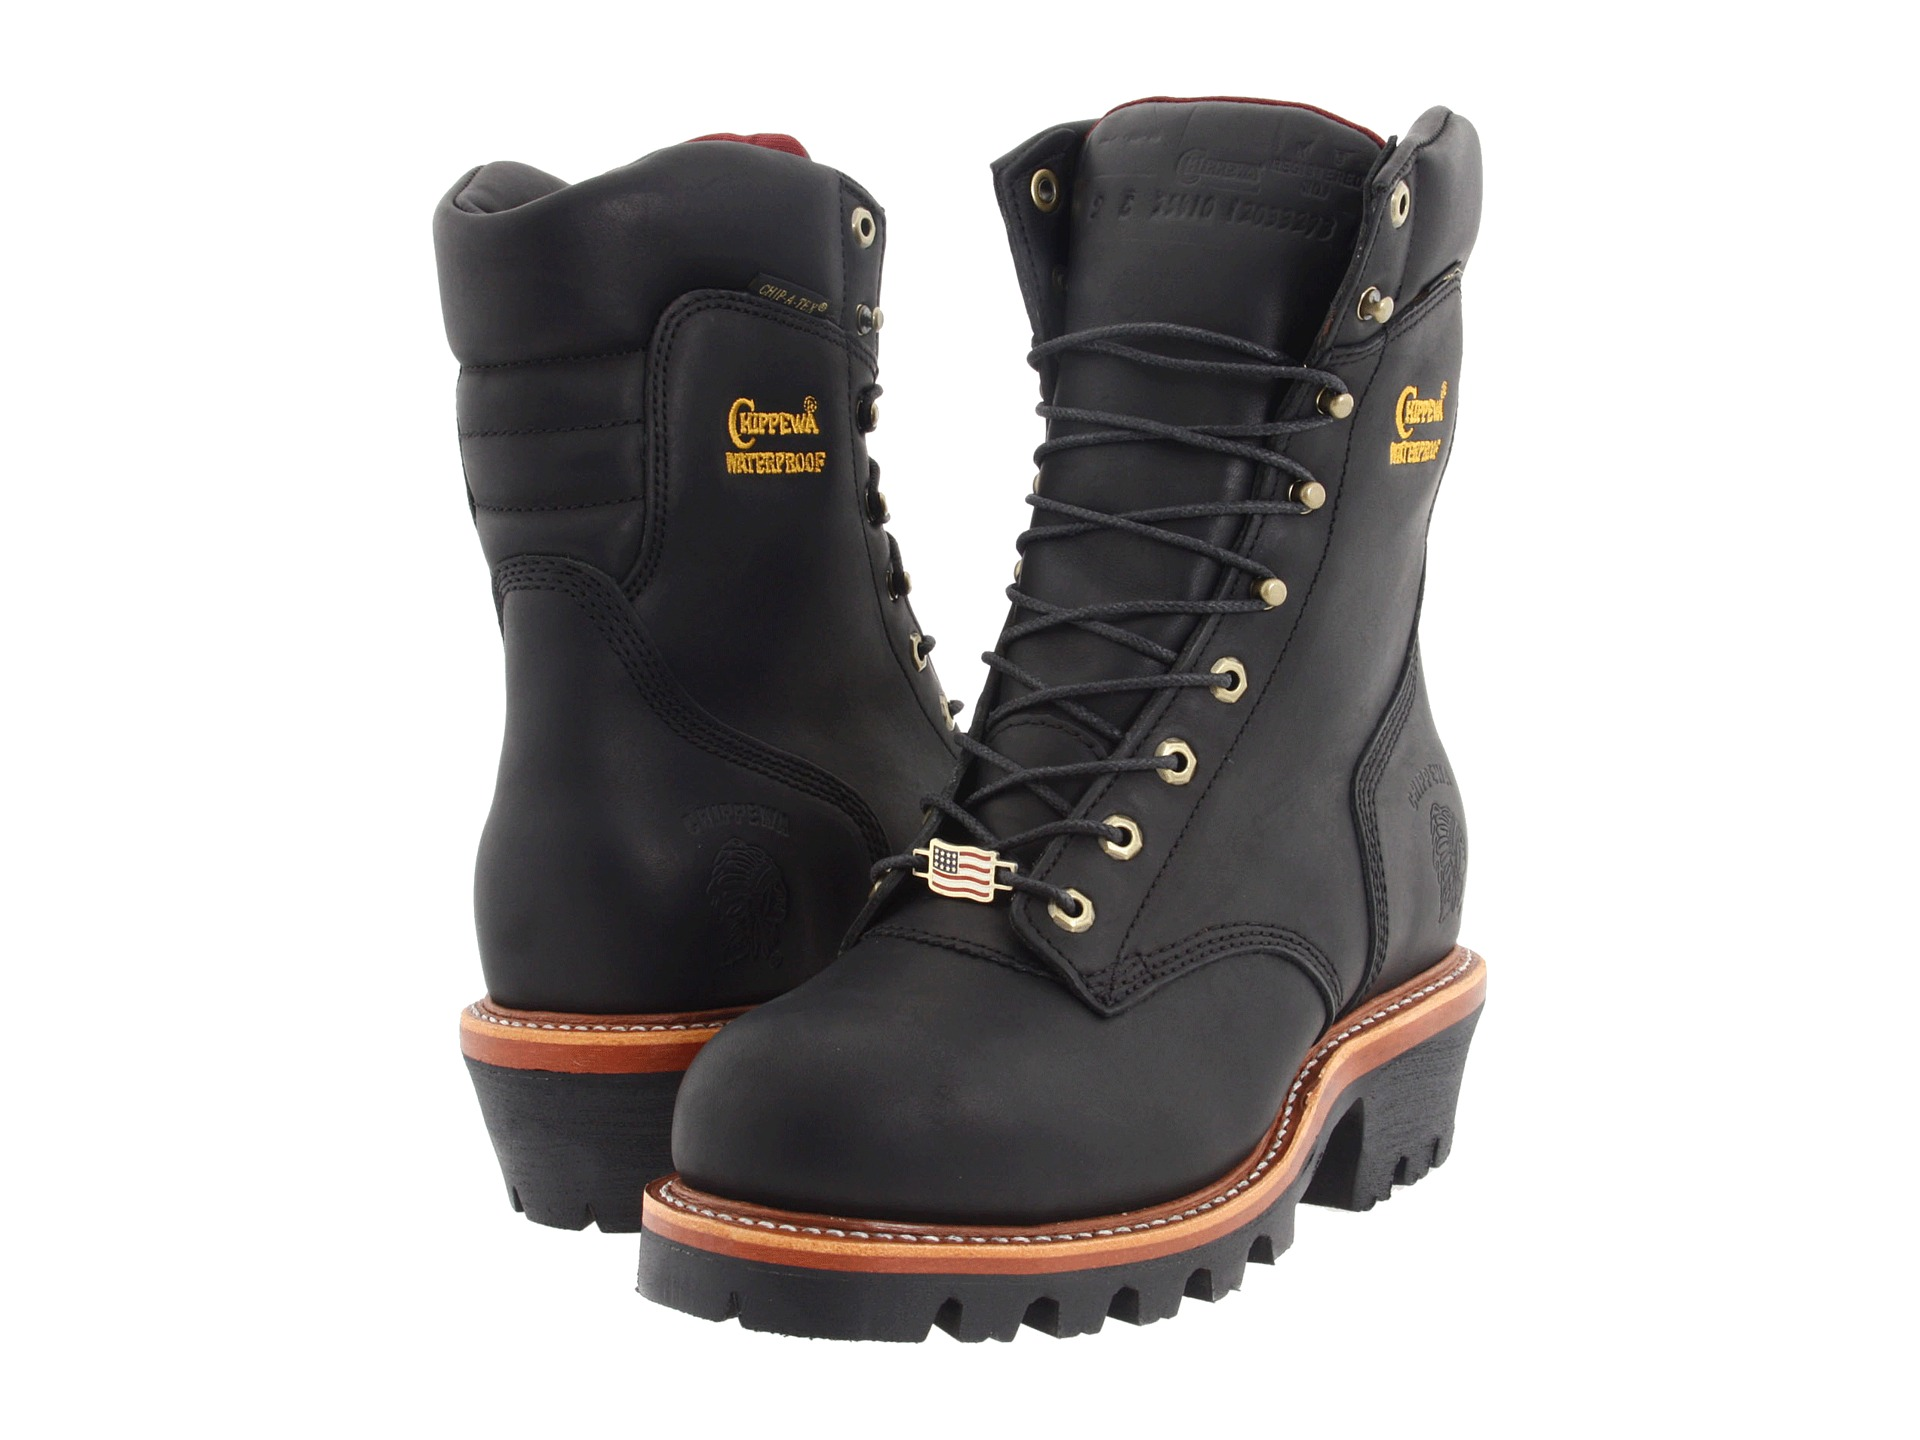 Chippewa 9 Quot Waterproof Insulated Super Logger Zappos Com